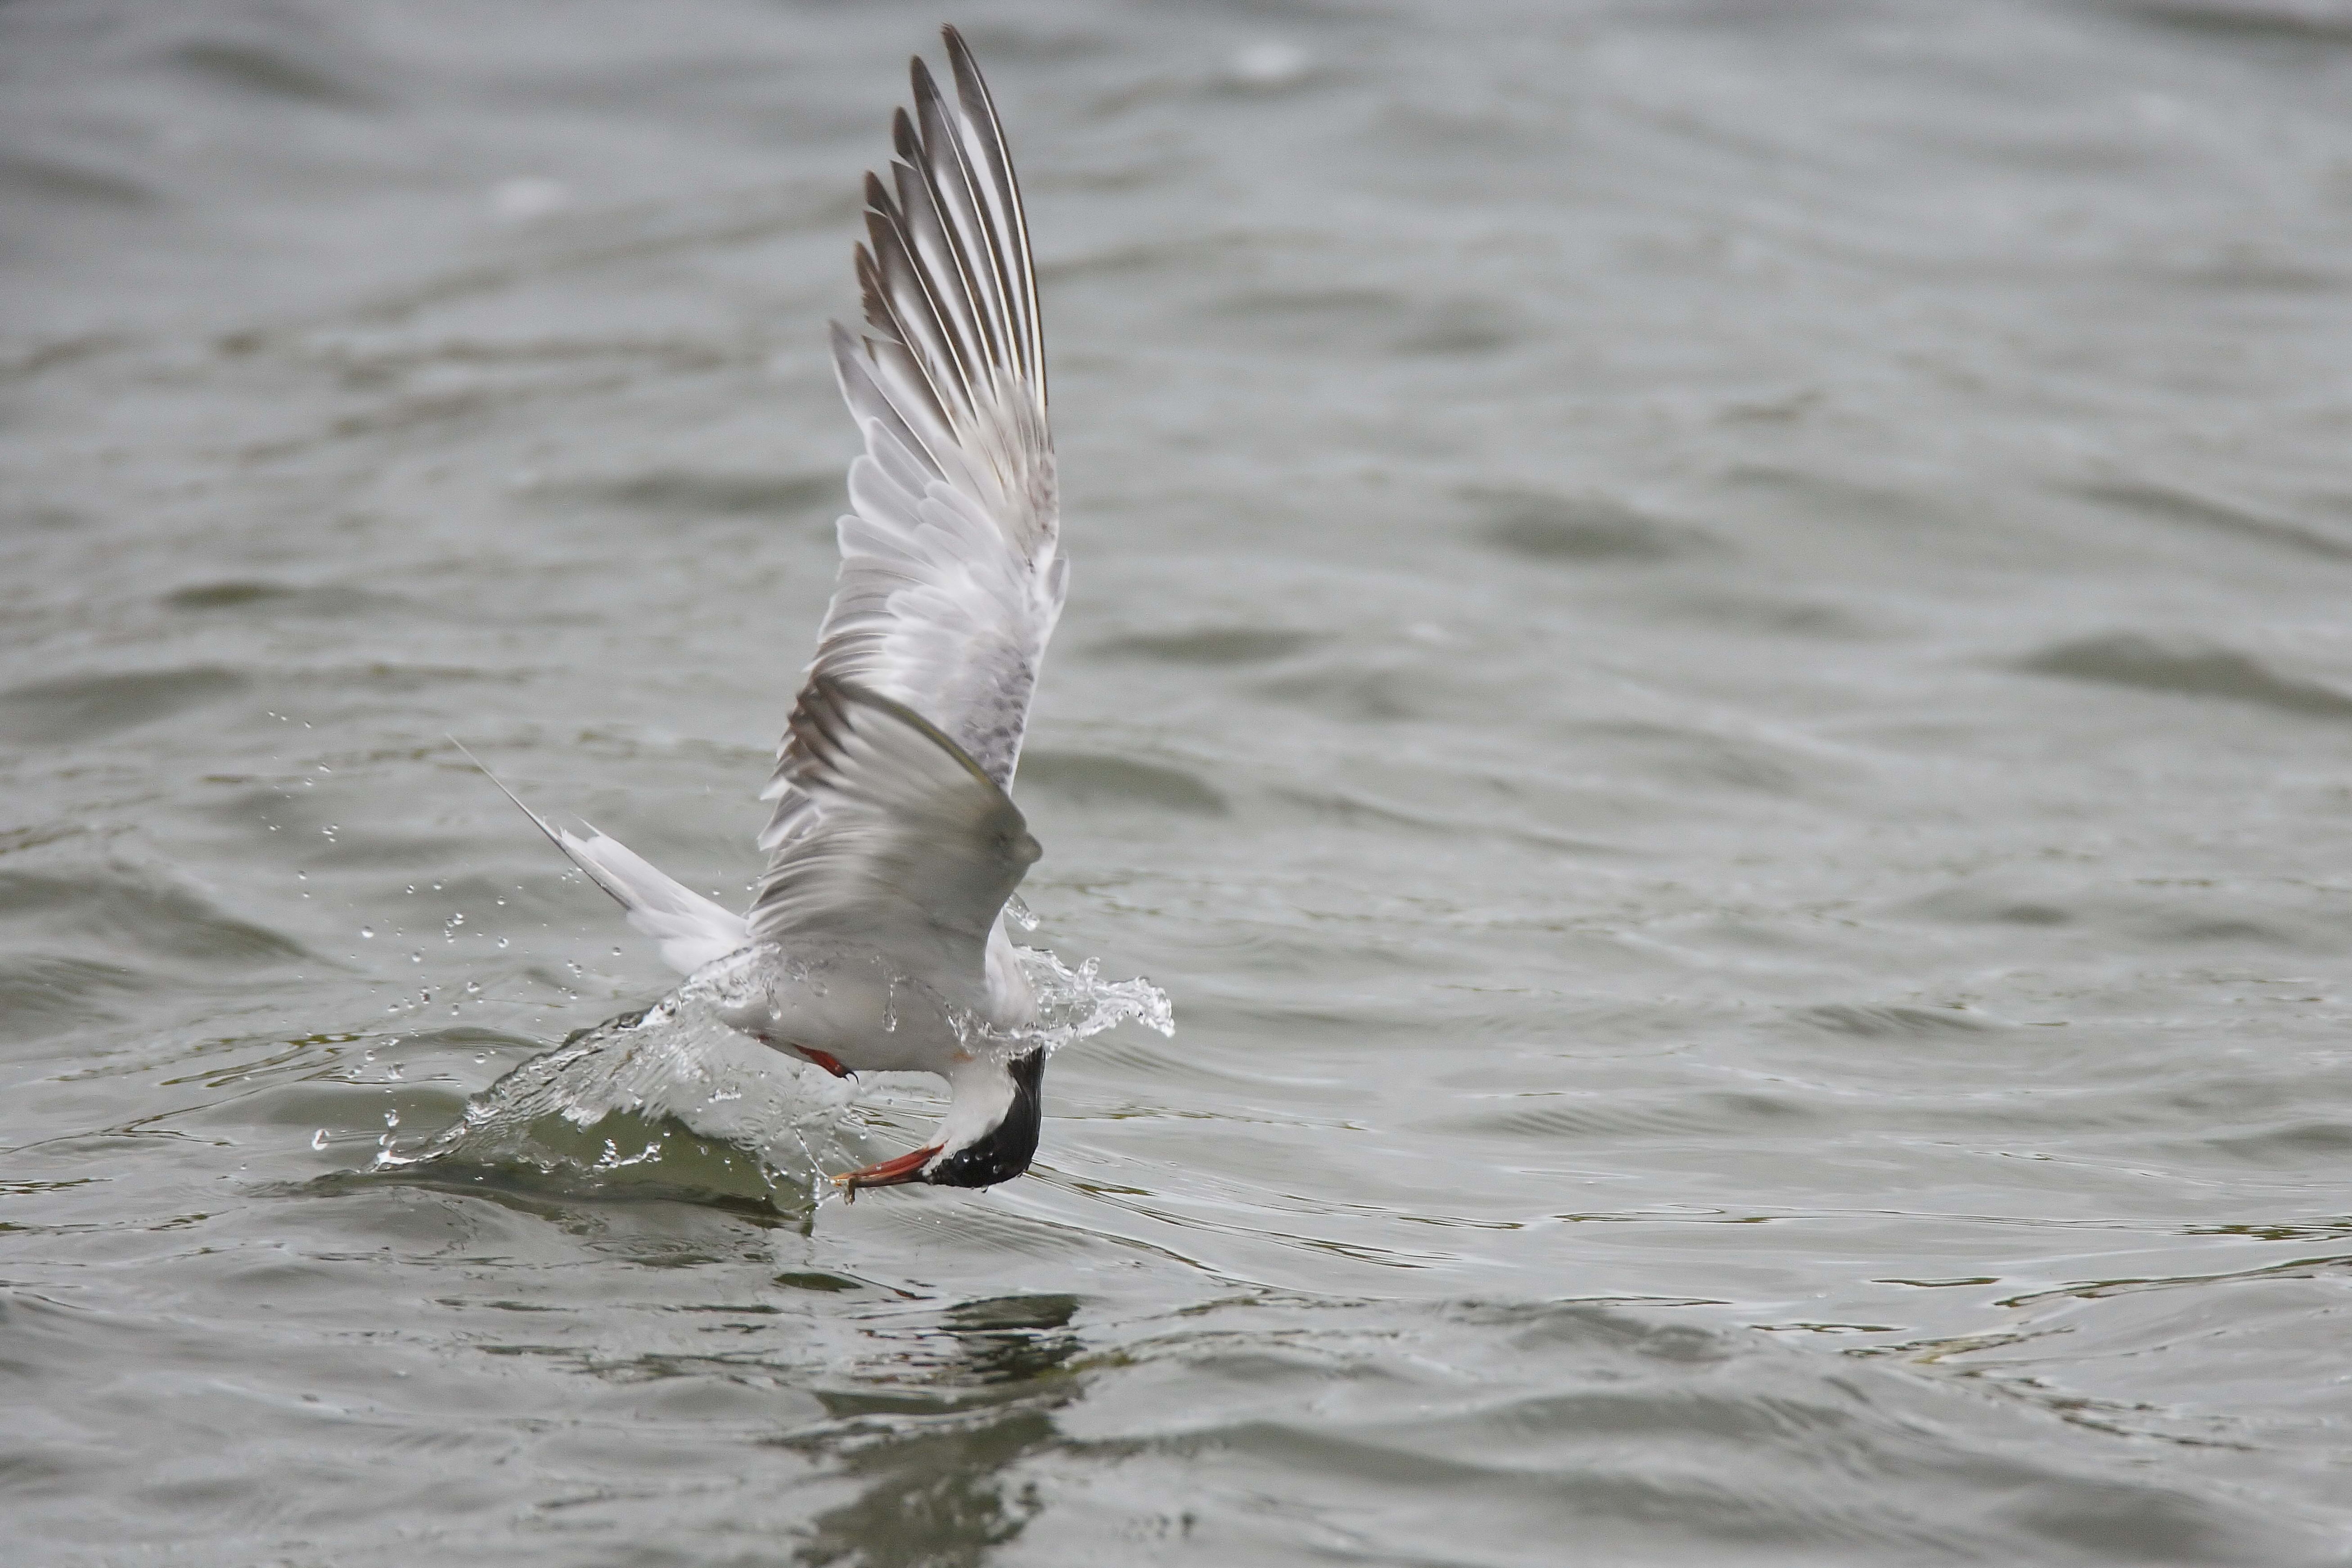 143295 download wallpaper Animals, Gull, Seagull, Mining, Hunting, Hunt screensavers and pictures for free